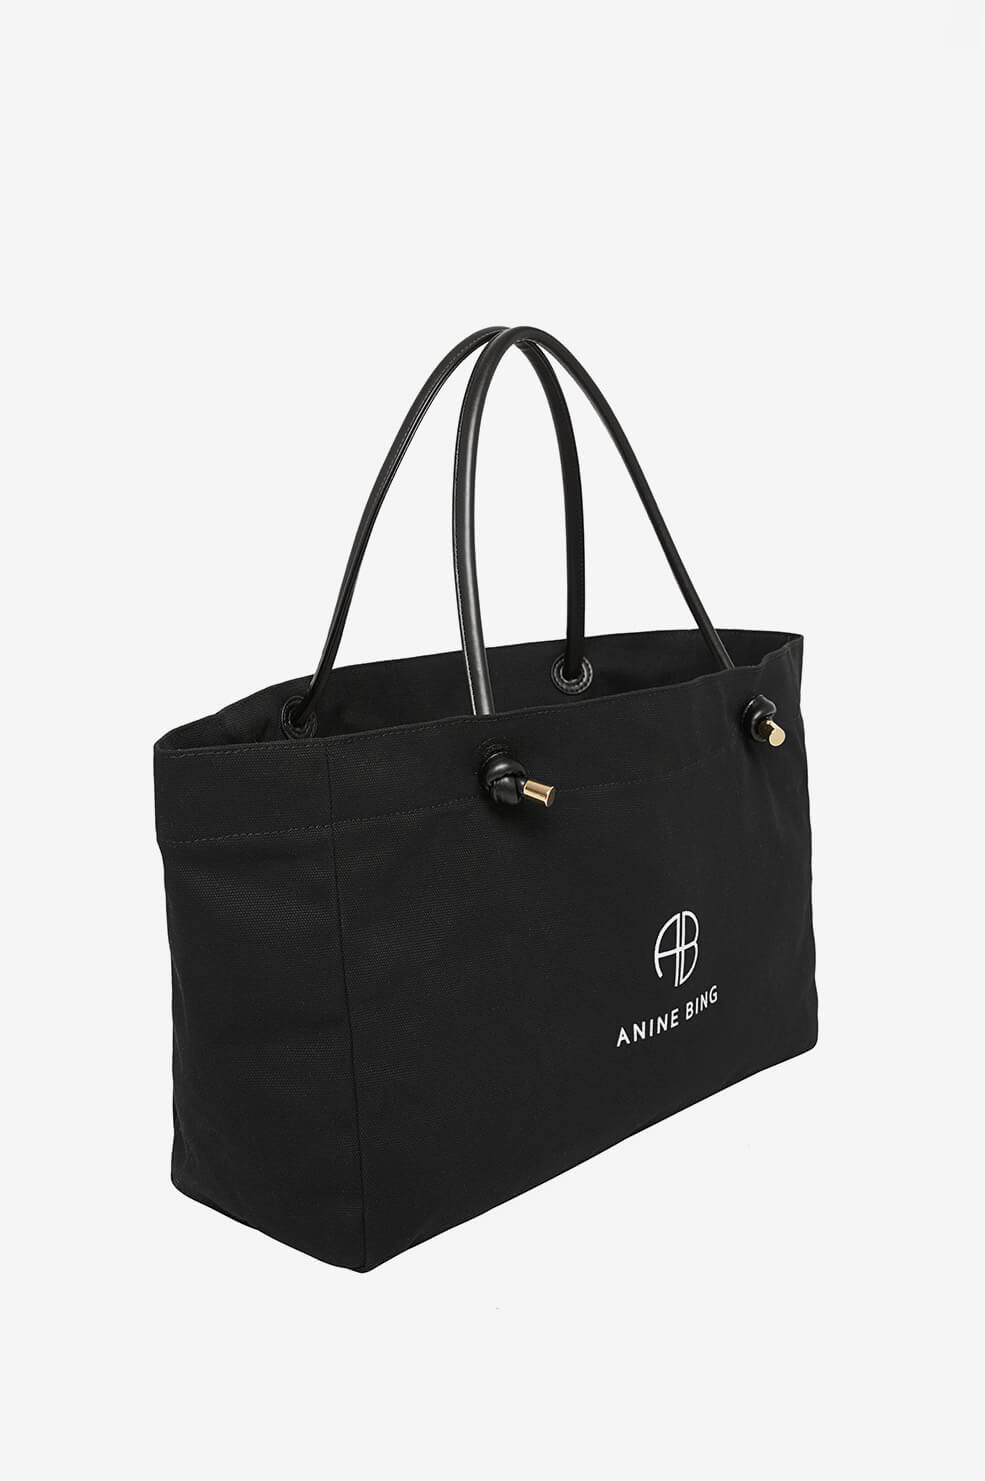 ANINE BING Medium Saffron Tote - Black